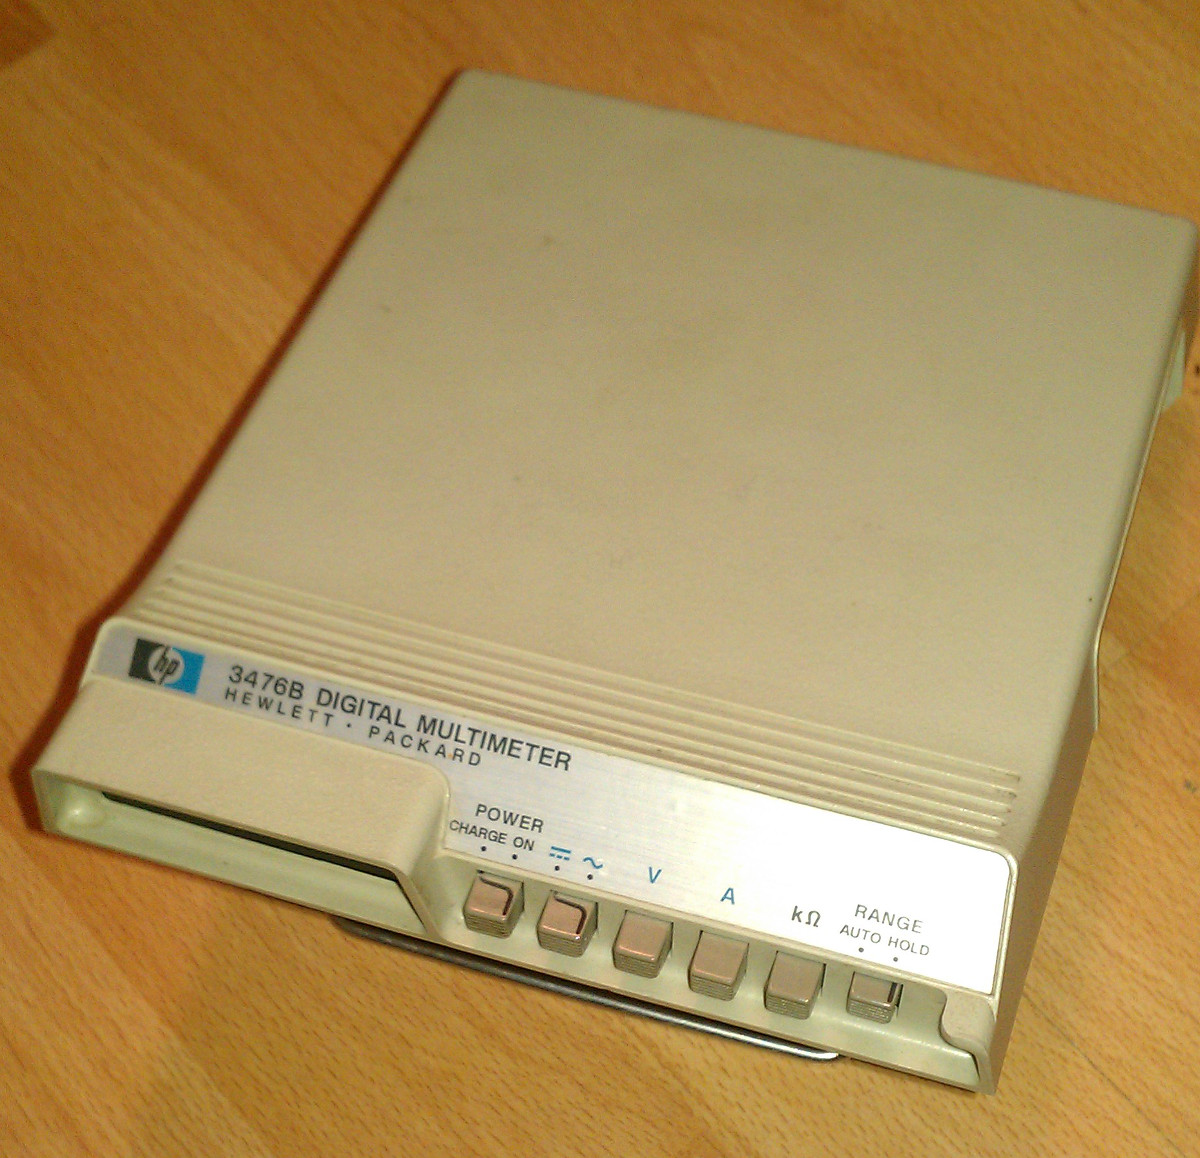 The main body of the HP 3476B DMM